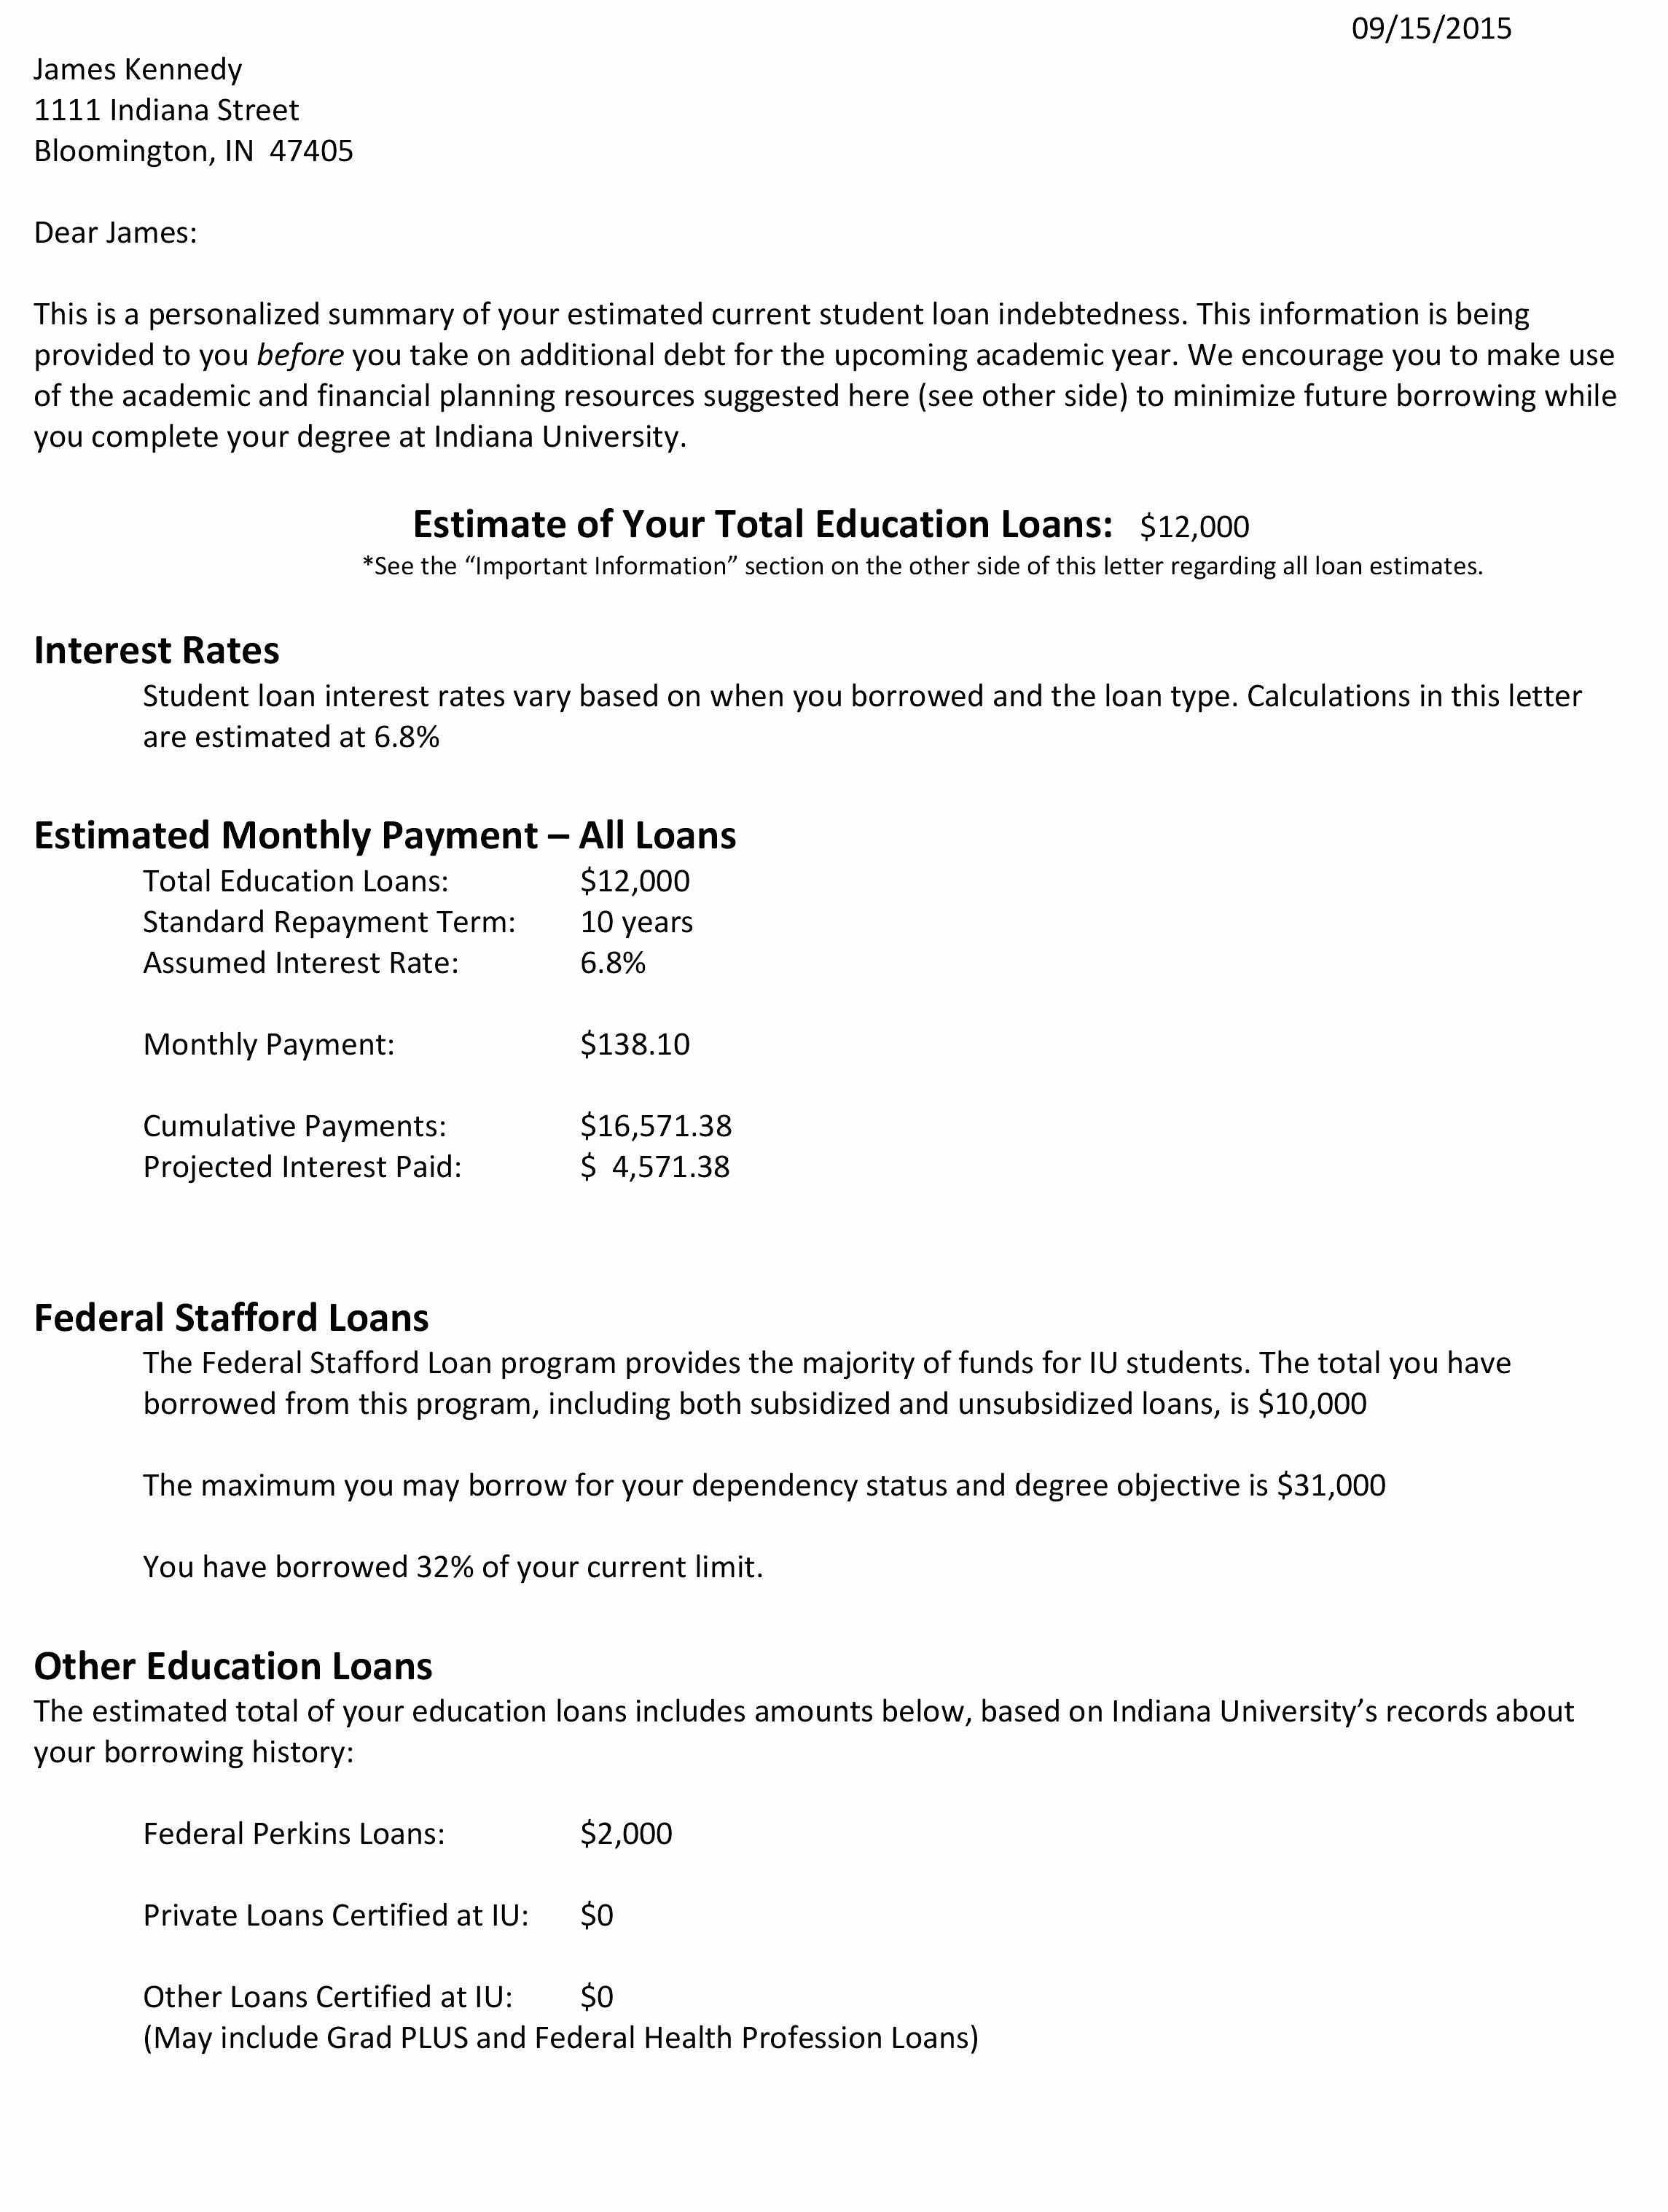 Student Loan forgiveness Letter Template - 15 Best Payment Terms Letter Template Resume Templates Resume